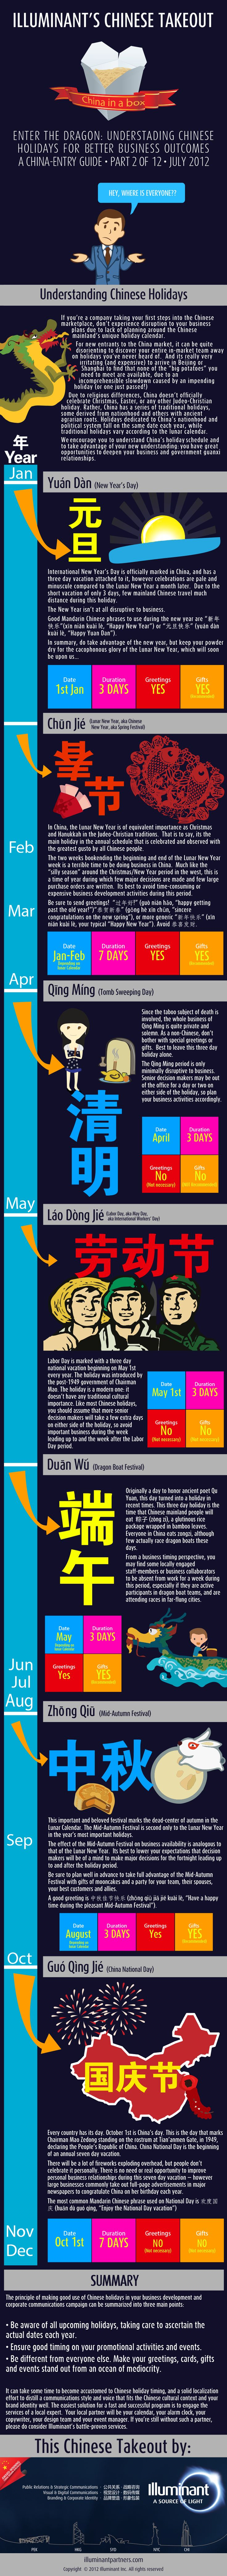 Illuminant's Chinese Takeout, part 2. Enter the Dragon: Understanding Chinese Holidays for Better Business Outcomes (infographic)